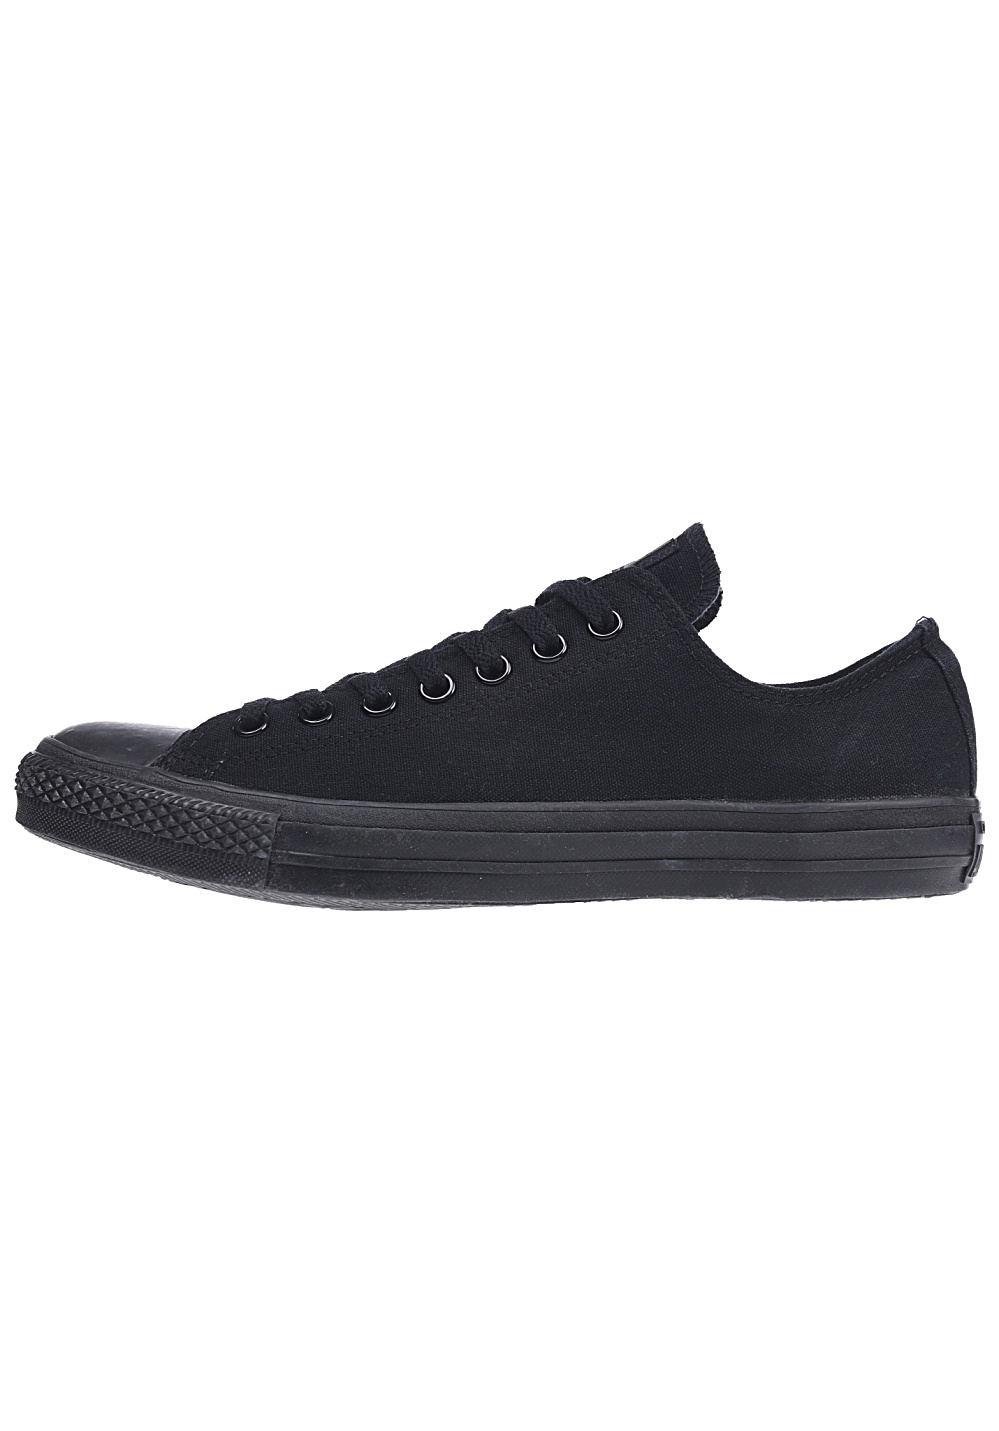 f664f2149b Converse Chuck Taylor All Star Ox - Zapatillas - Negro - Planet Sports